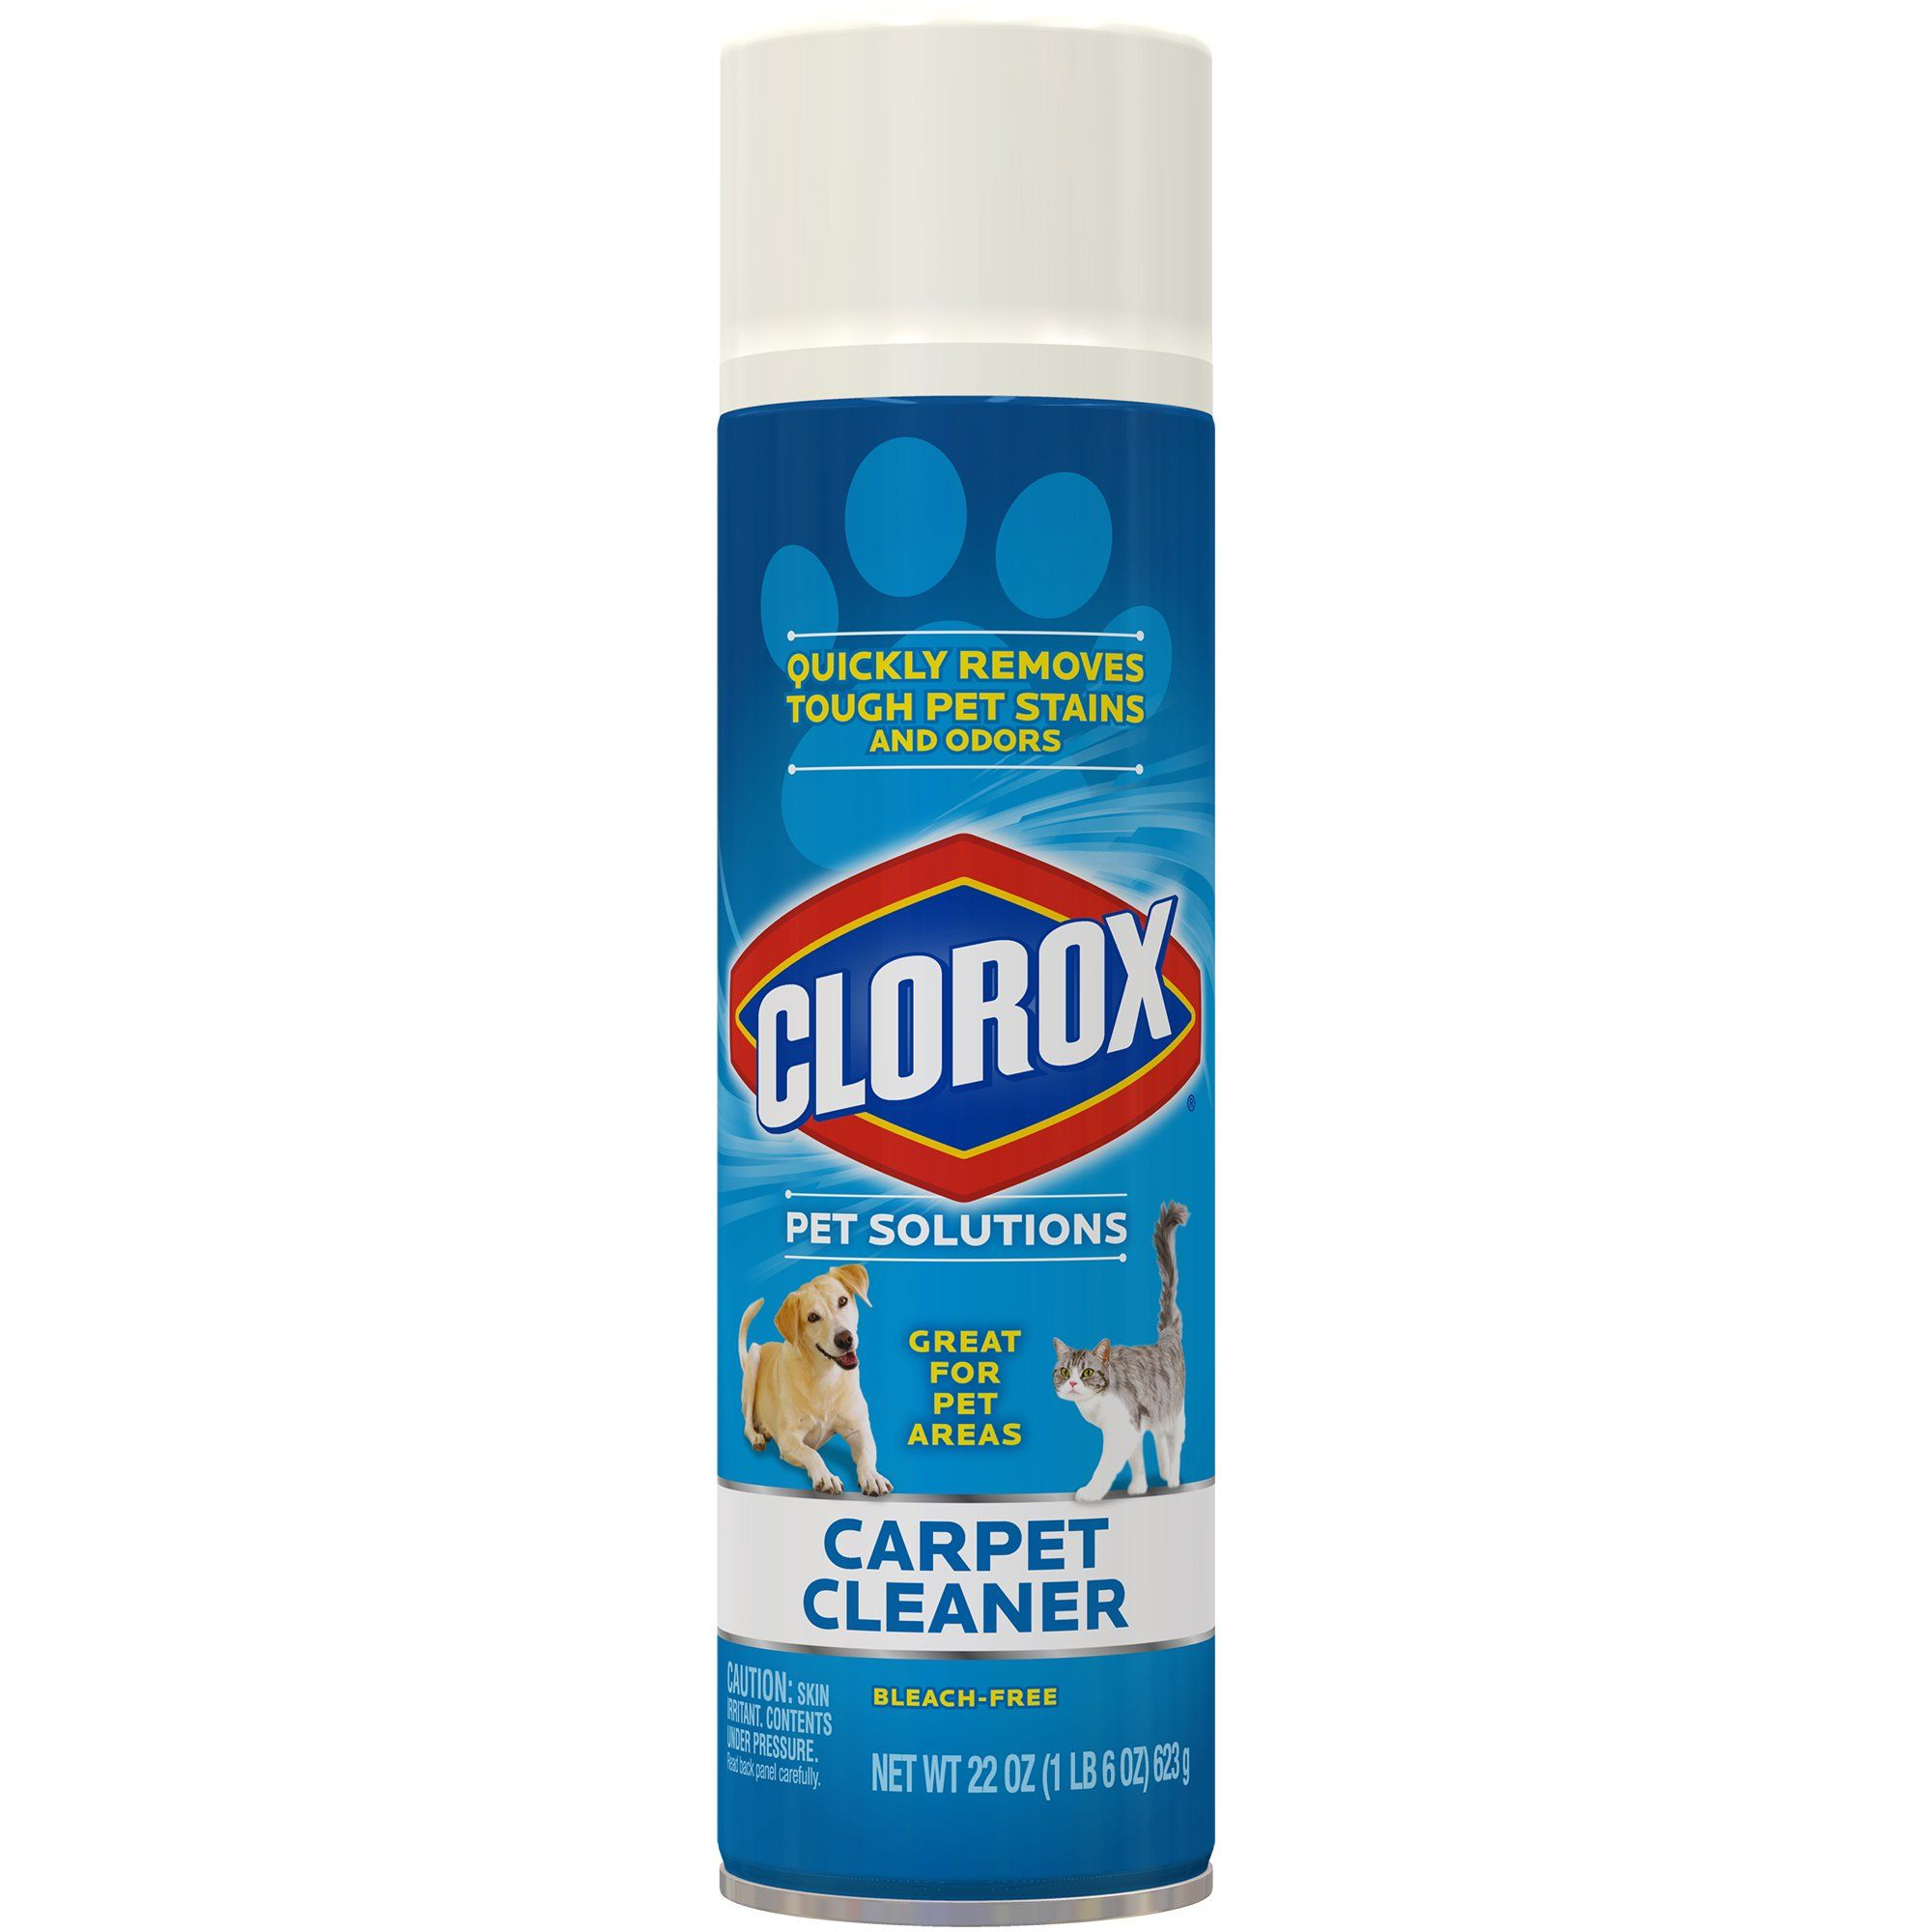 Clorox Carpet Cleaner Aerosol 22 Fl Oz Carpet Cleaners Best Carpet Stain Remover Cleaning Spray